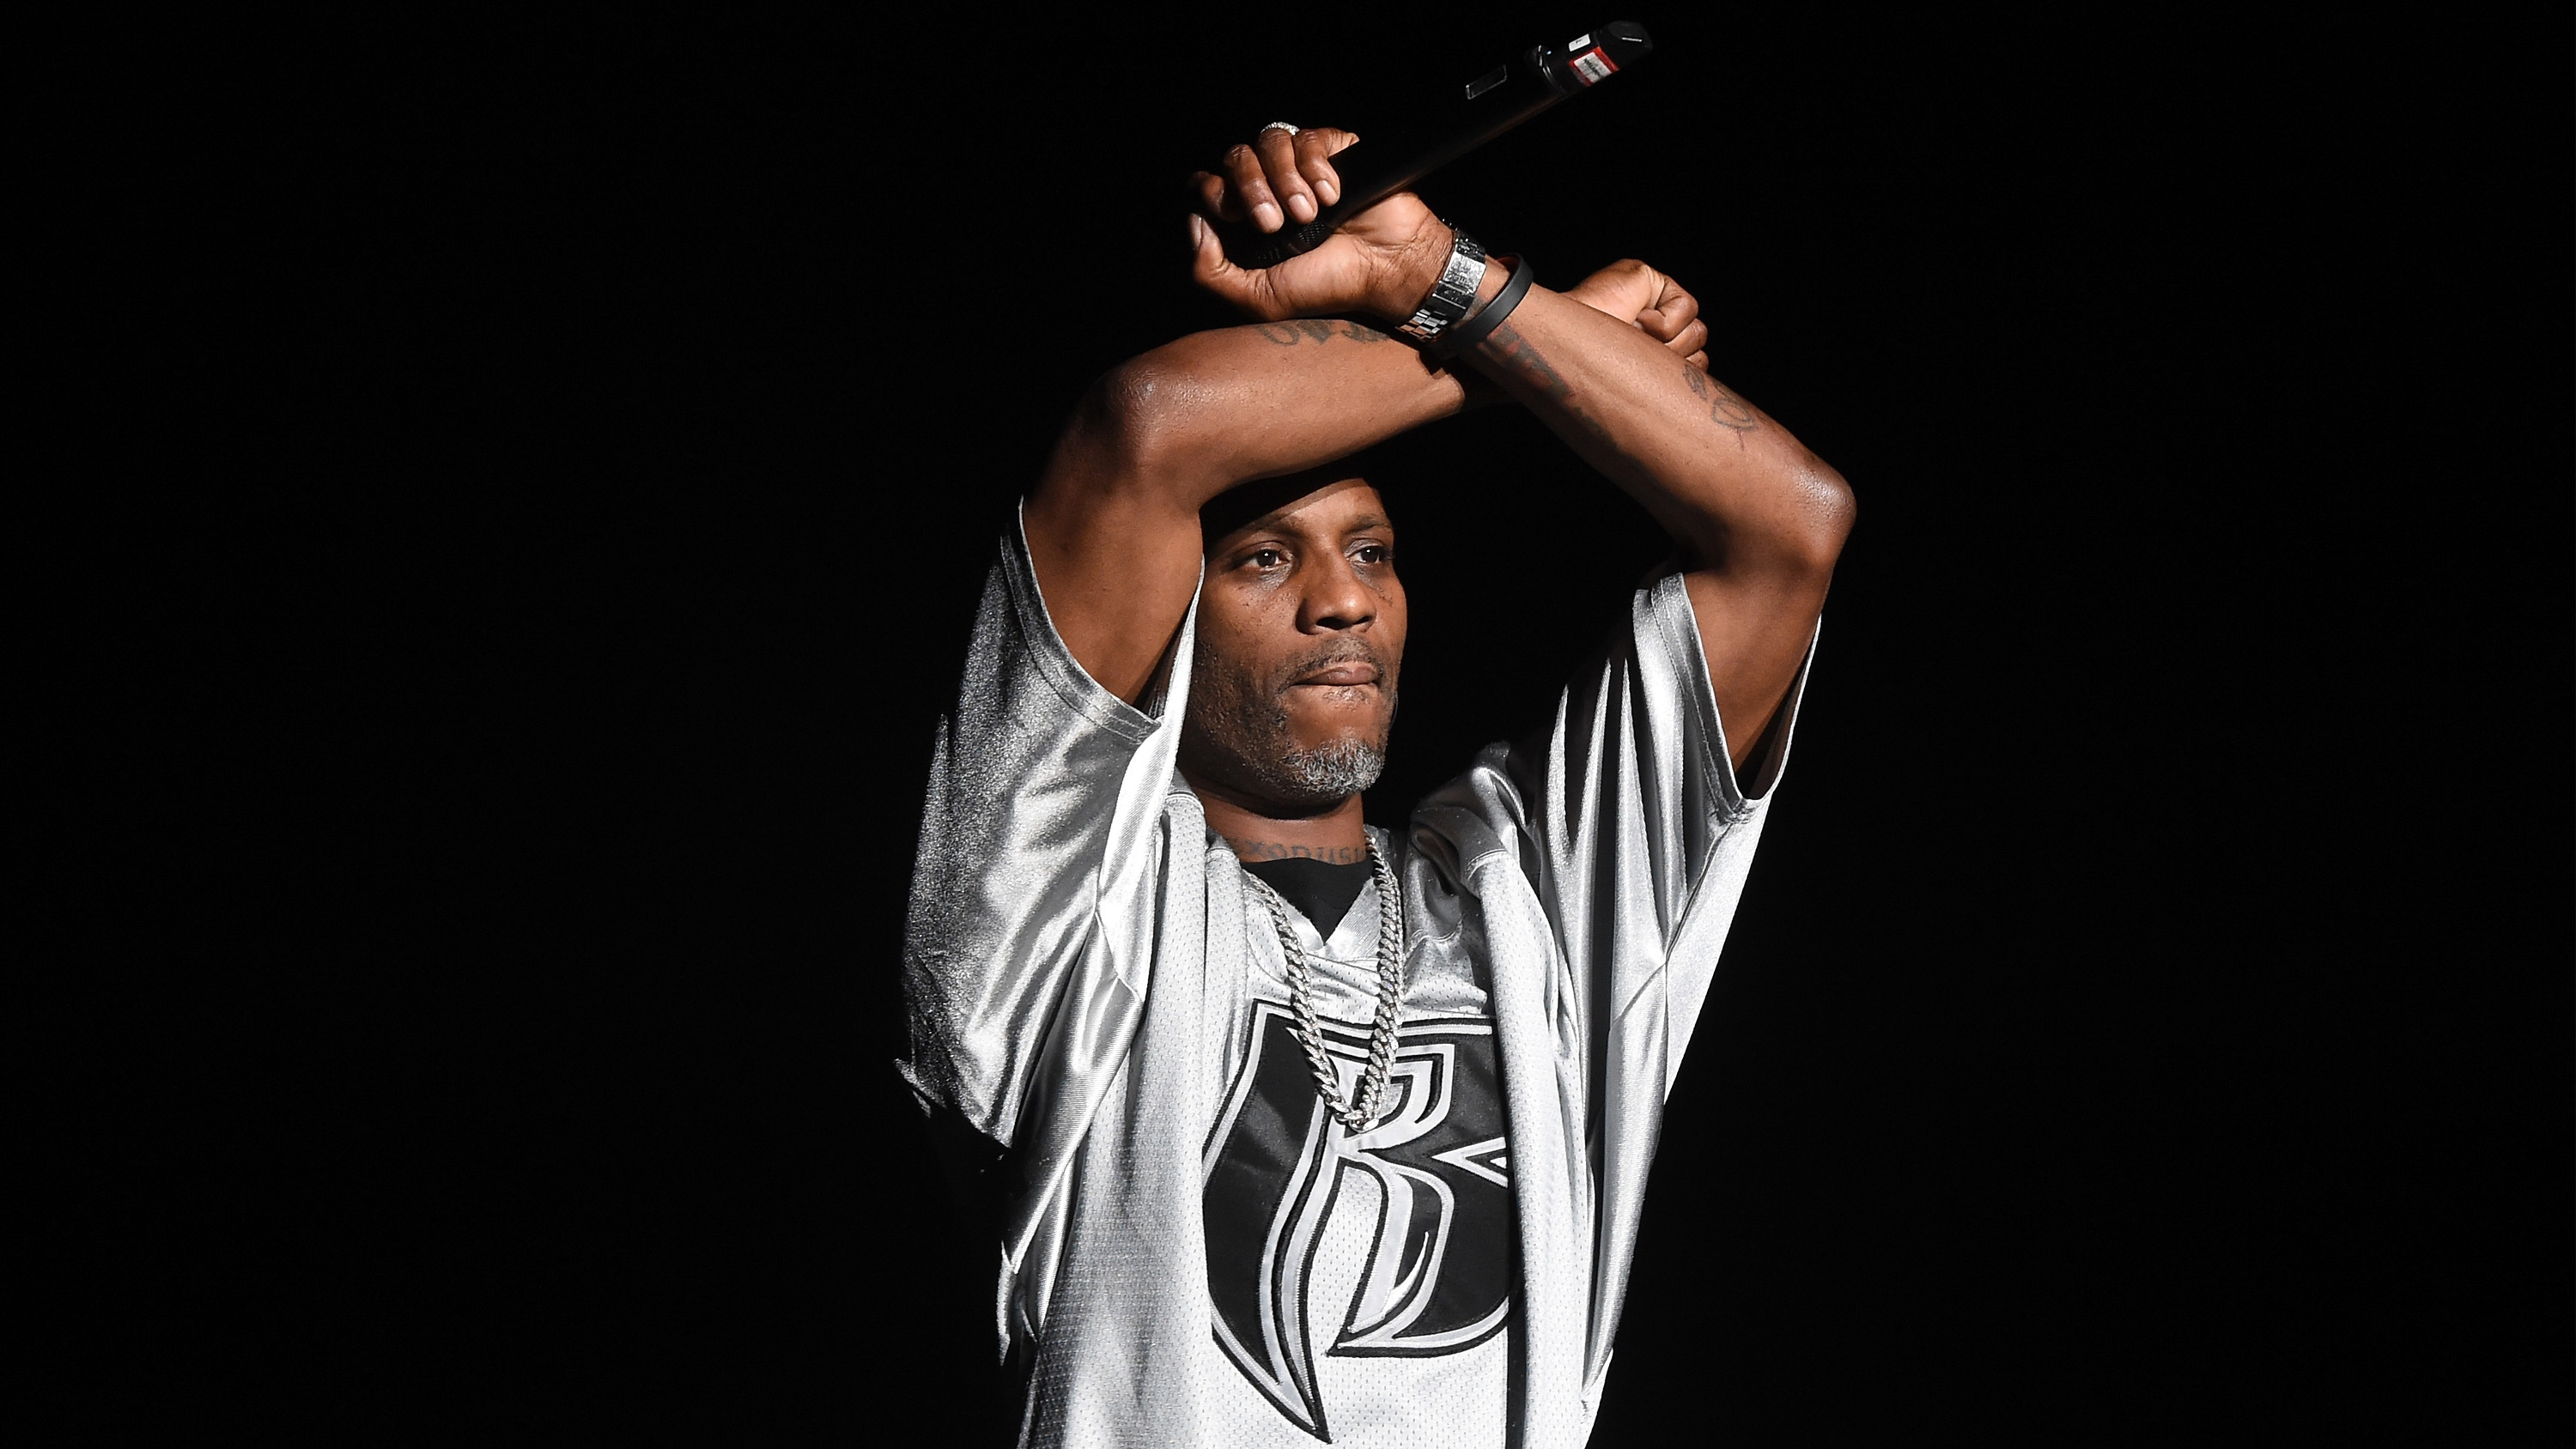 DMX featured on new song with French Montana and Swizz Beatz